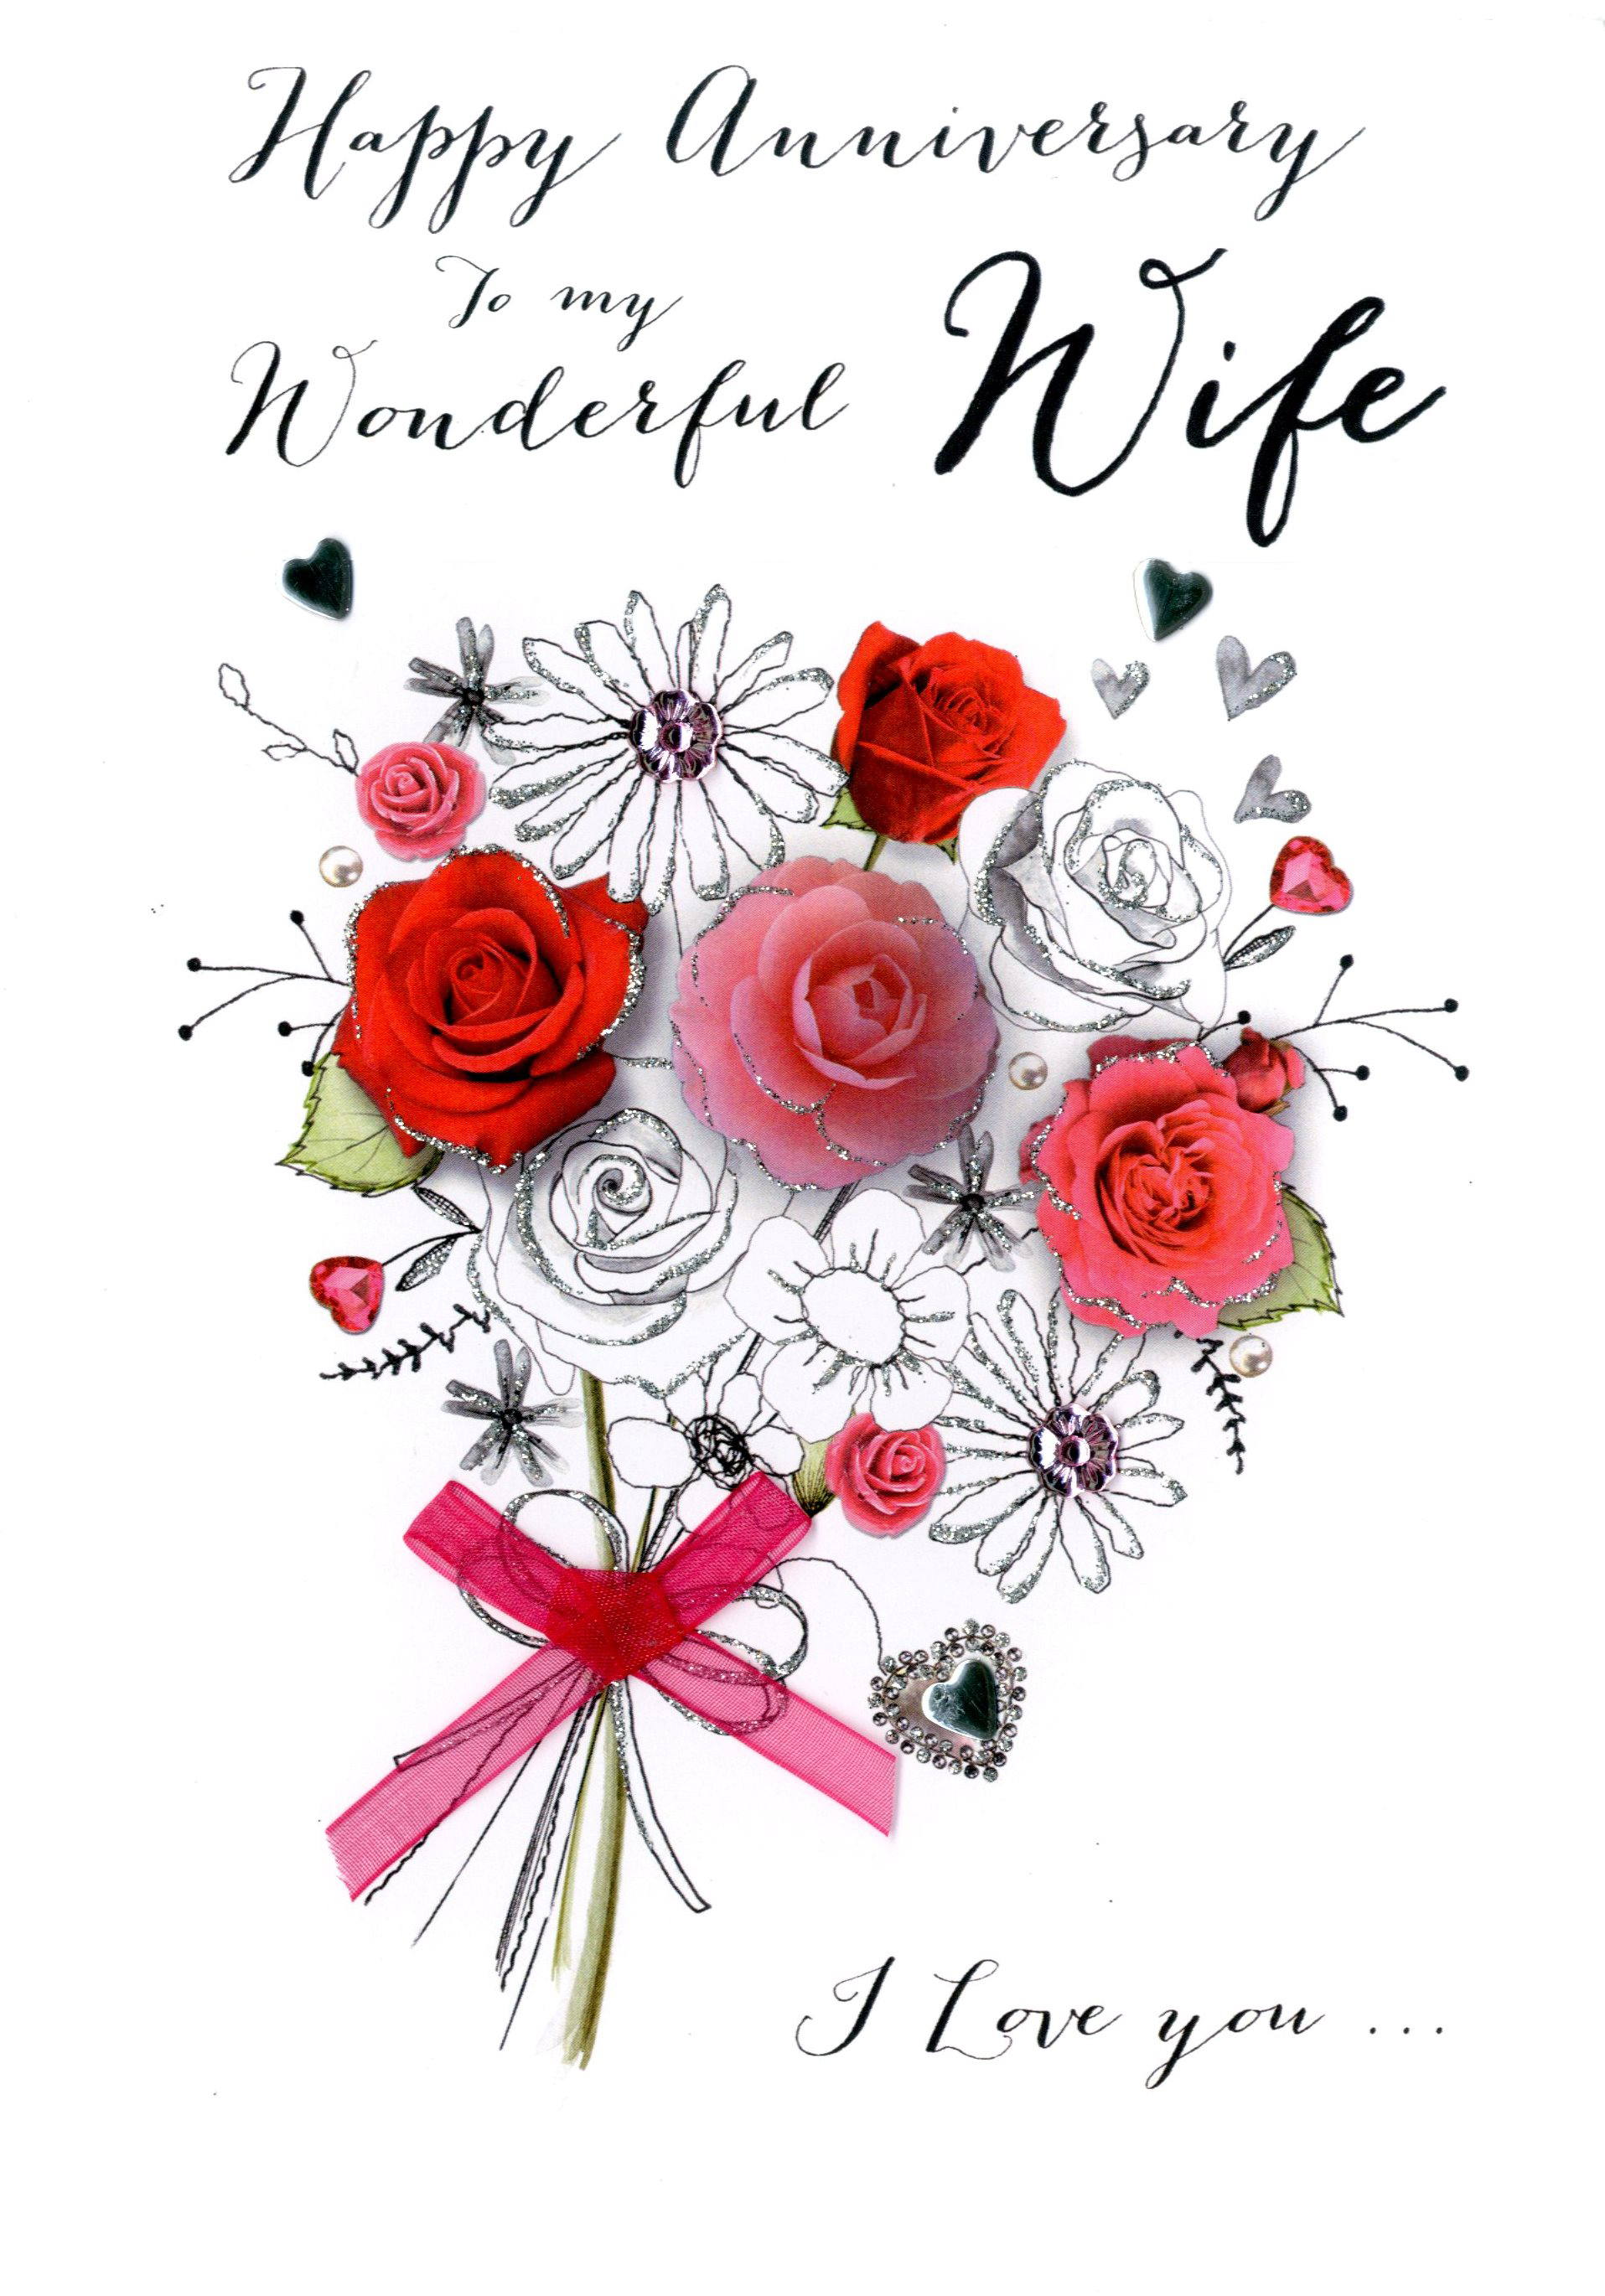 Wonderful wife happy anniversary greeting card cards love kates wonderful wife happy anniversary greeting card m4hsunfo